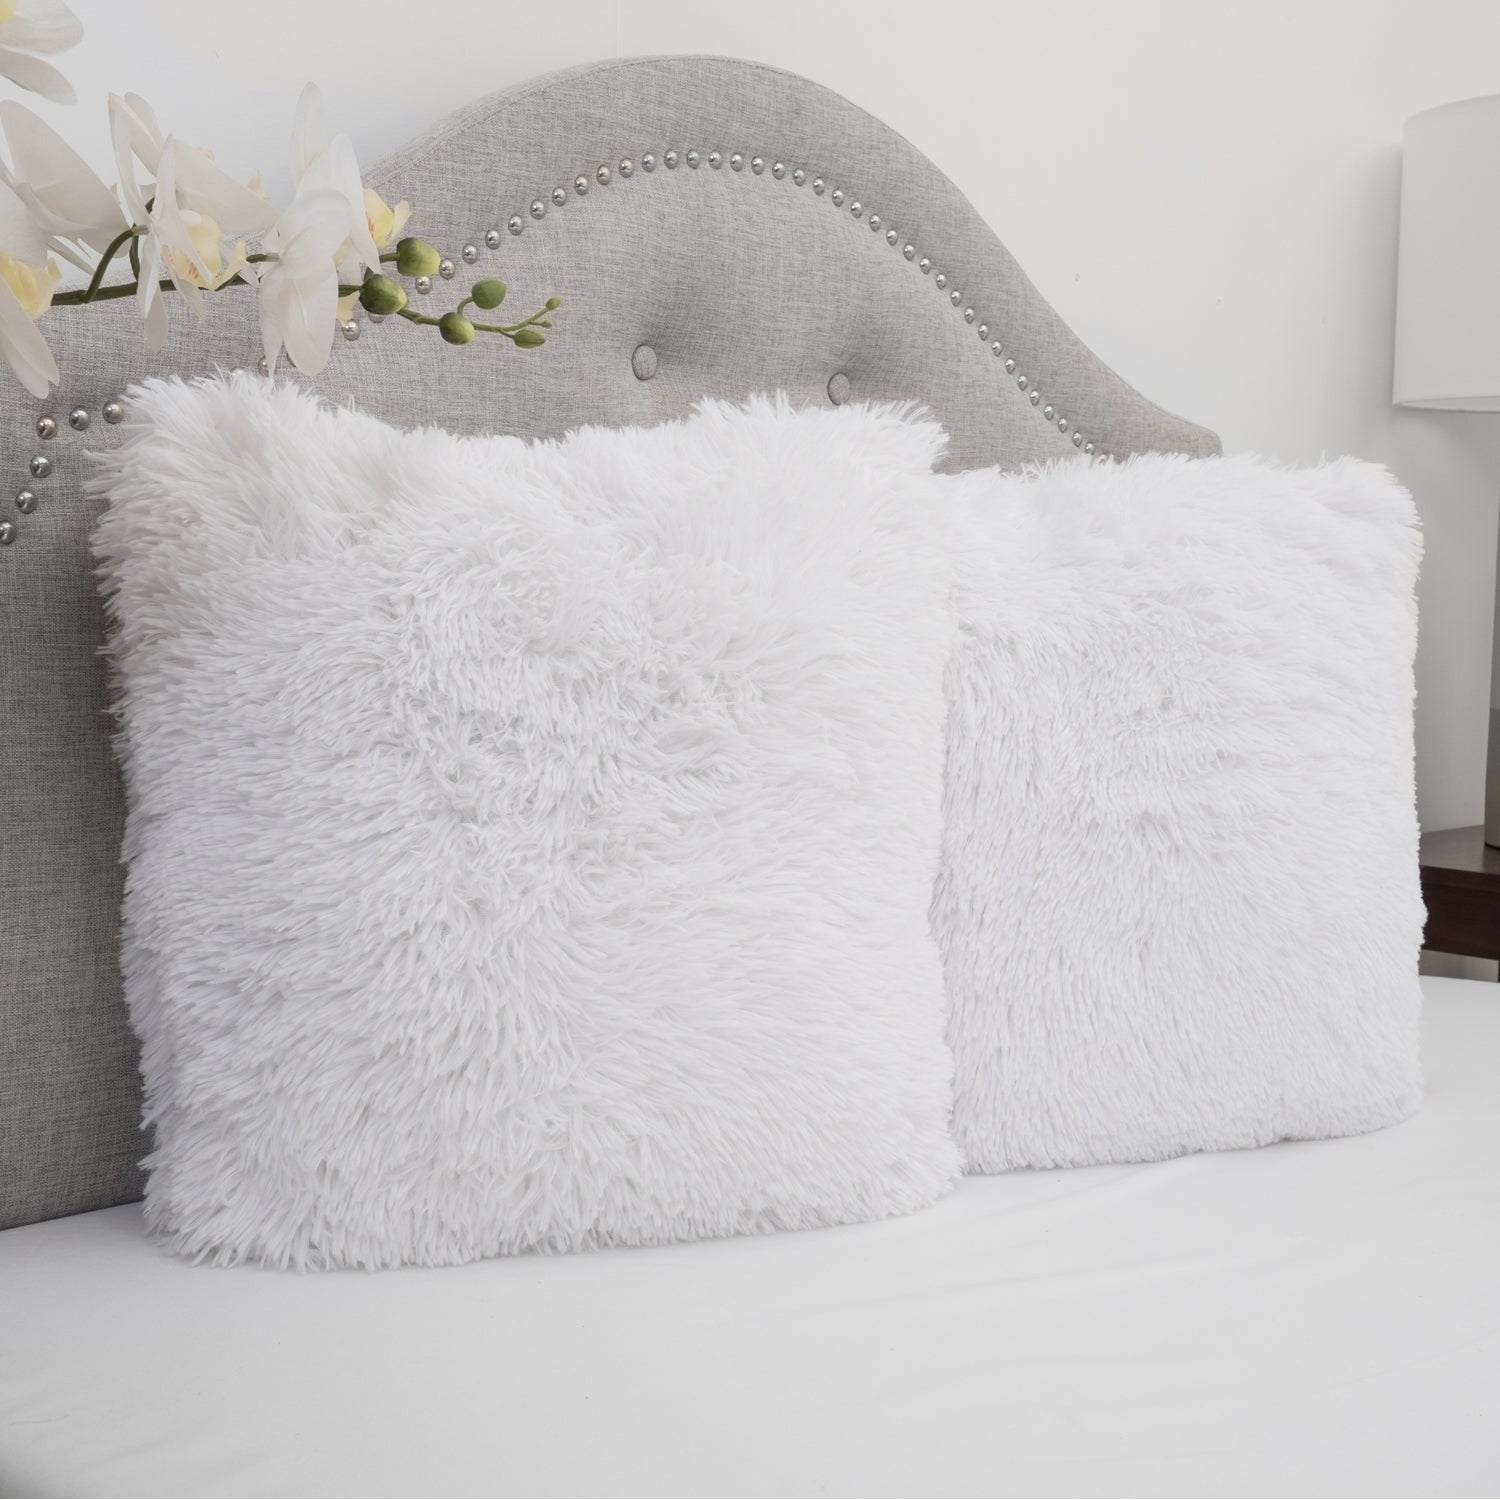 Shop Faux Fur 18 Inch Decorative Throw Pillows (set of 2